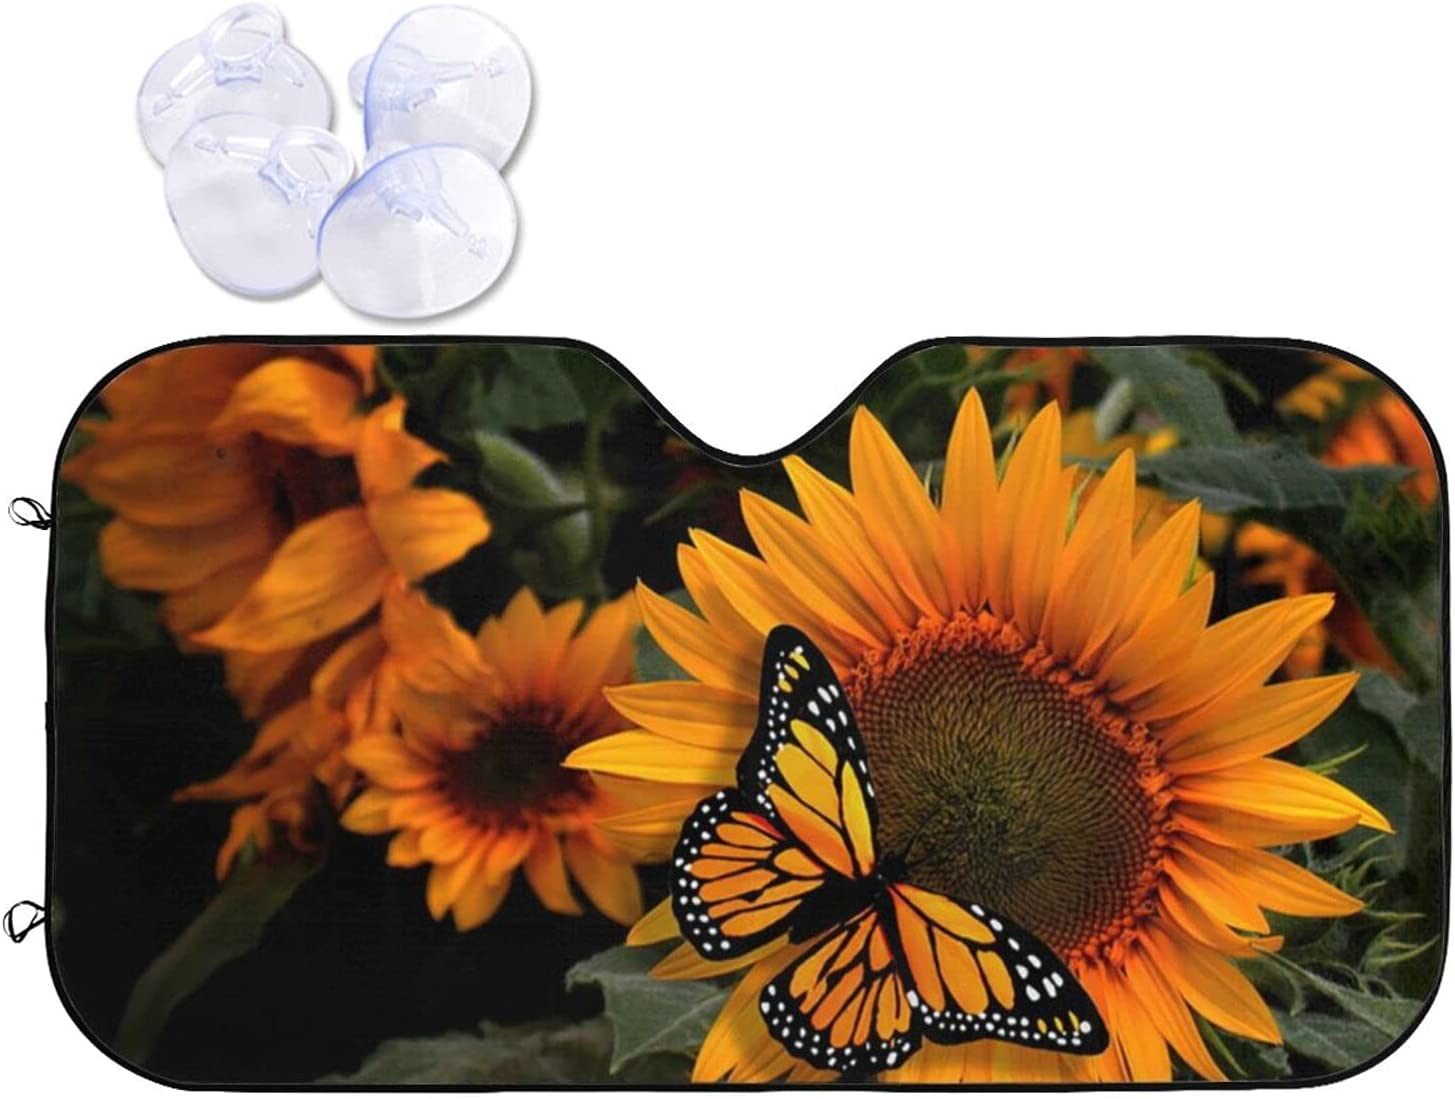 KXT Max 45% OFF Windshield Sun Shade Sunflower Foldable Minneapolis Mall Car Butterflies with